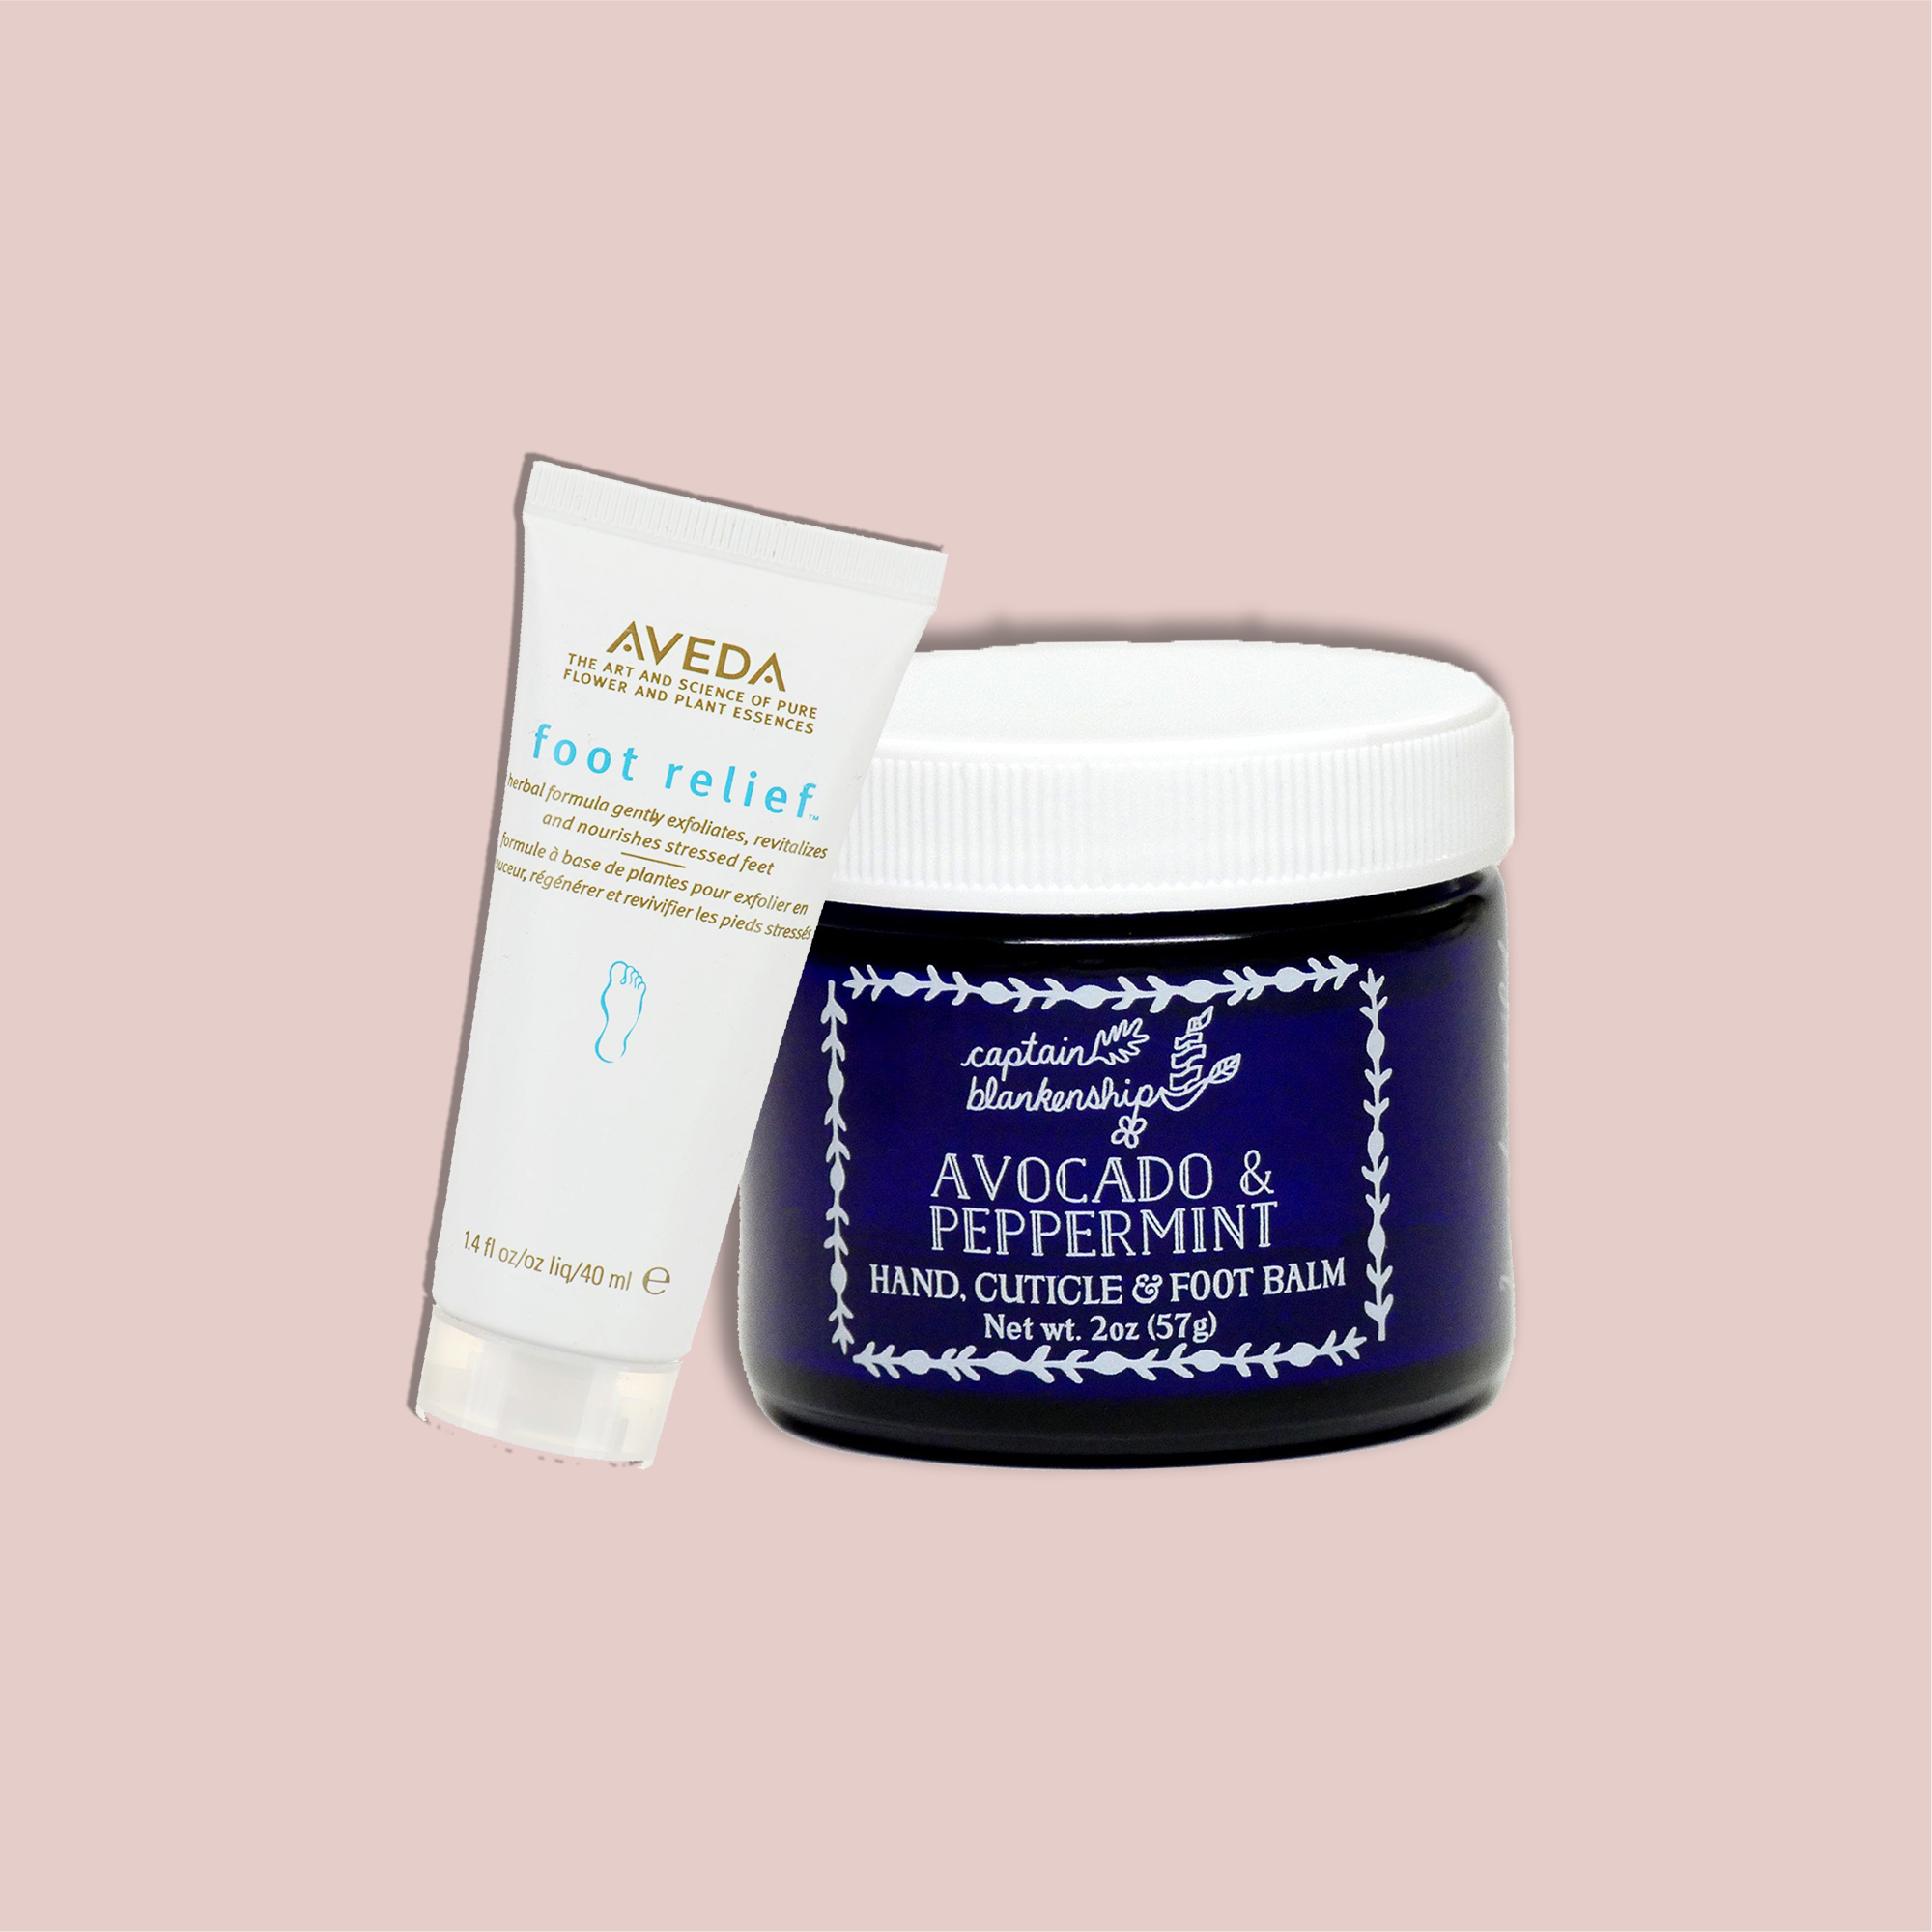 Aveda Foot Relief Cream product.